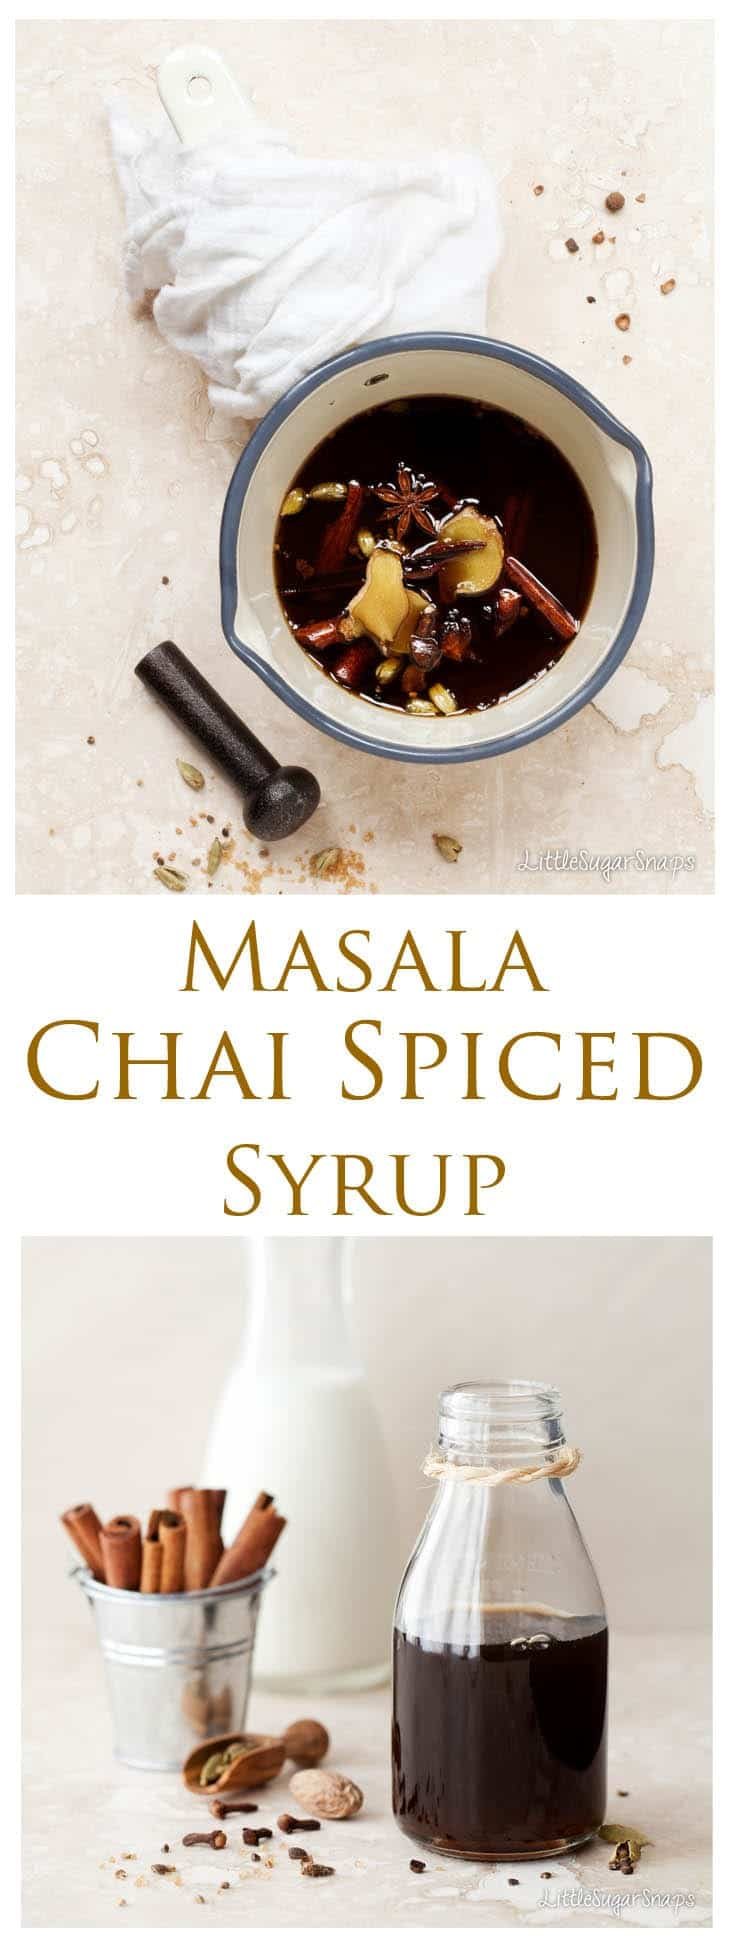 Masala Chai Syrup is a sweet, dark & intense syrup that is useful for flavouring drinks and recipes with a delicious blend of Indian spices. Who needs coffee-shop chai latte when this syrup is so easy & cheap to make at home.